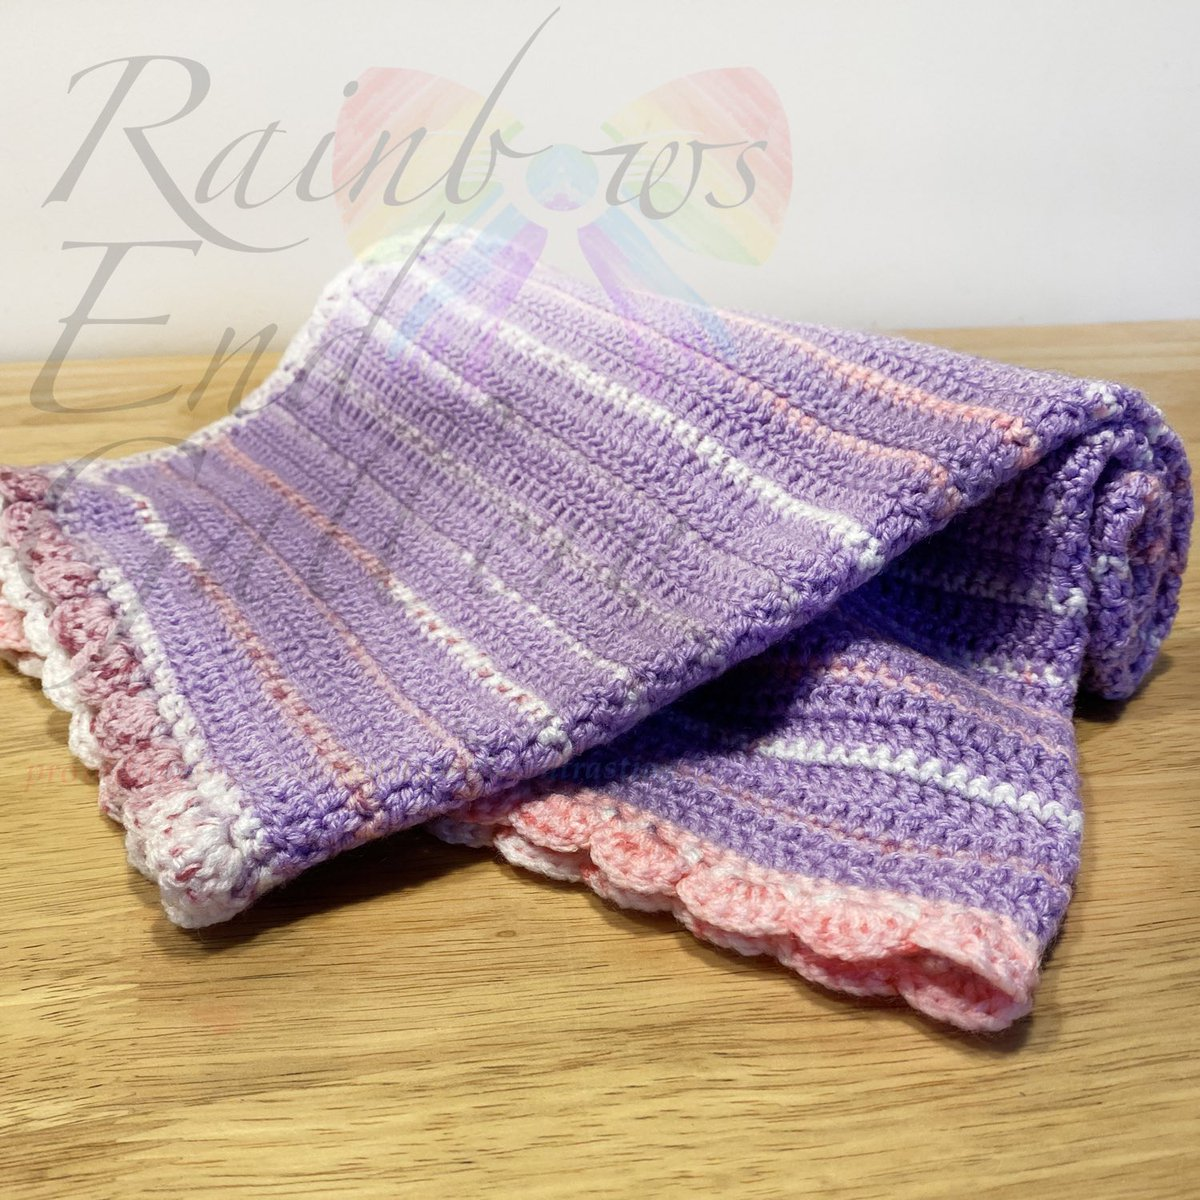 Excited to share this item from my #etsy shop: Crocheted Blanket - By Nannies Nutty Knits in Essex #pink #purple #striped